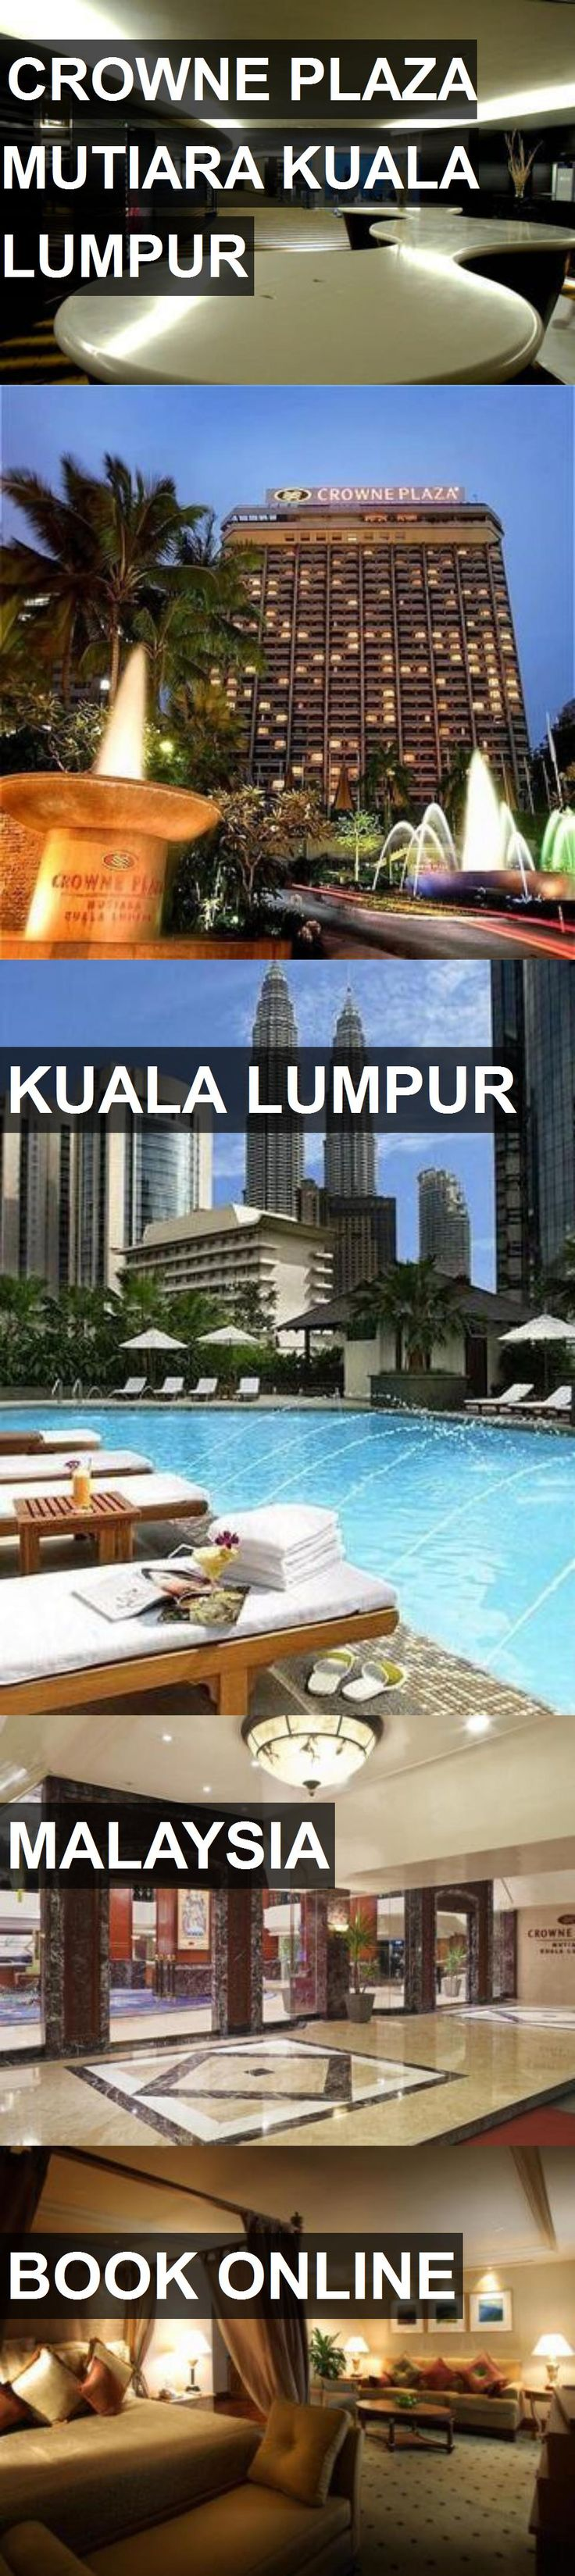 Hotel CROWNE PLAZA MUTIARA KUALA LUMPUR in Kuala Lumpur, Malaysia. For more information, photos, reviews and best prices please follow the link. #Malaysia #KualaLumpur #travel #vacation #hotel